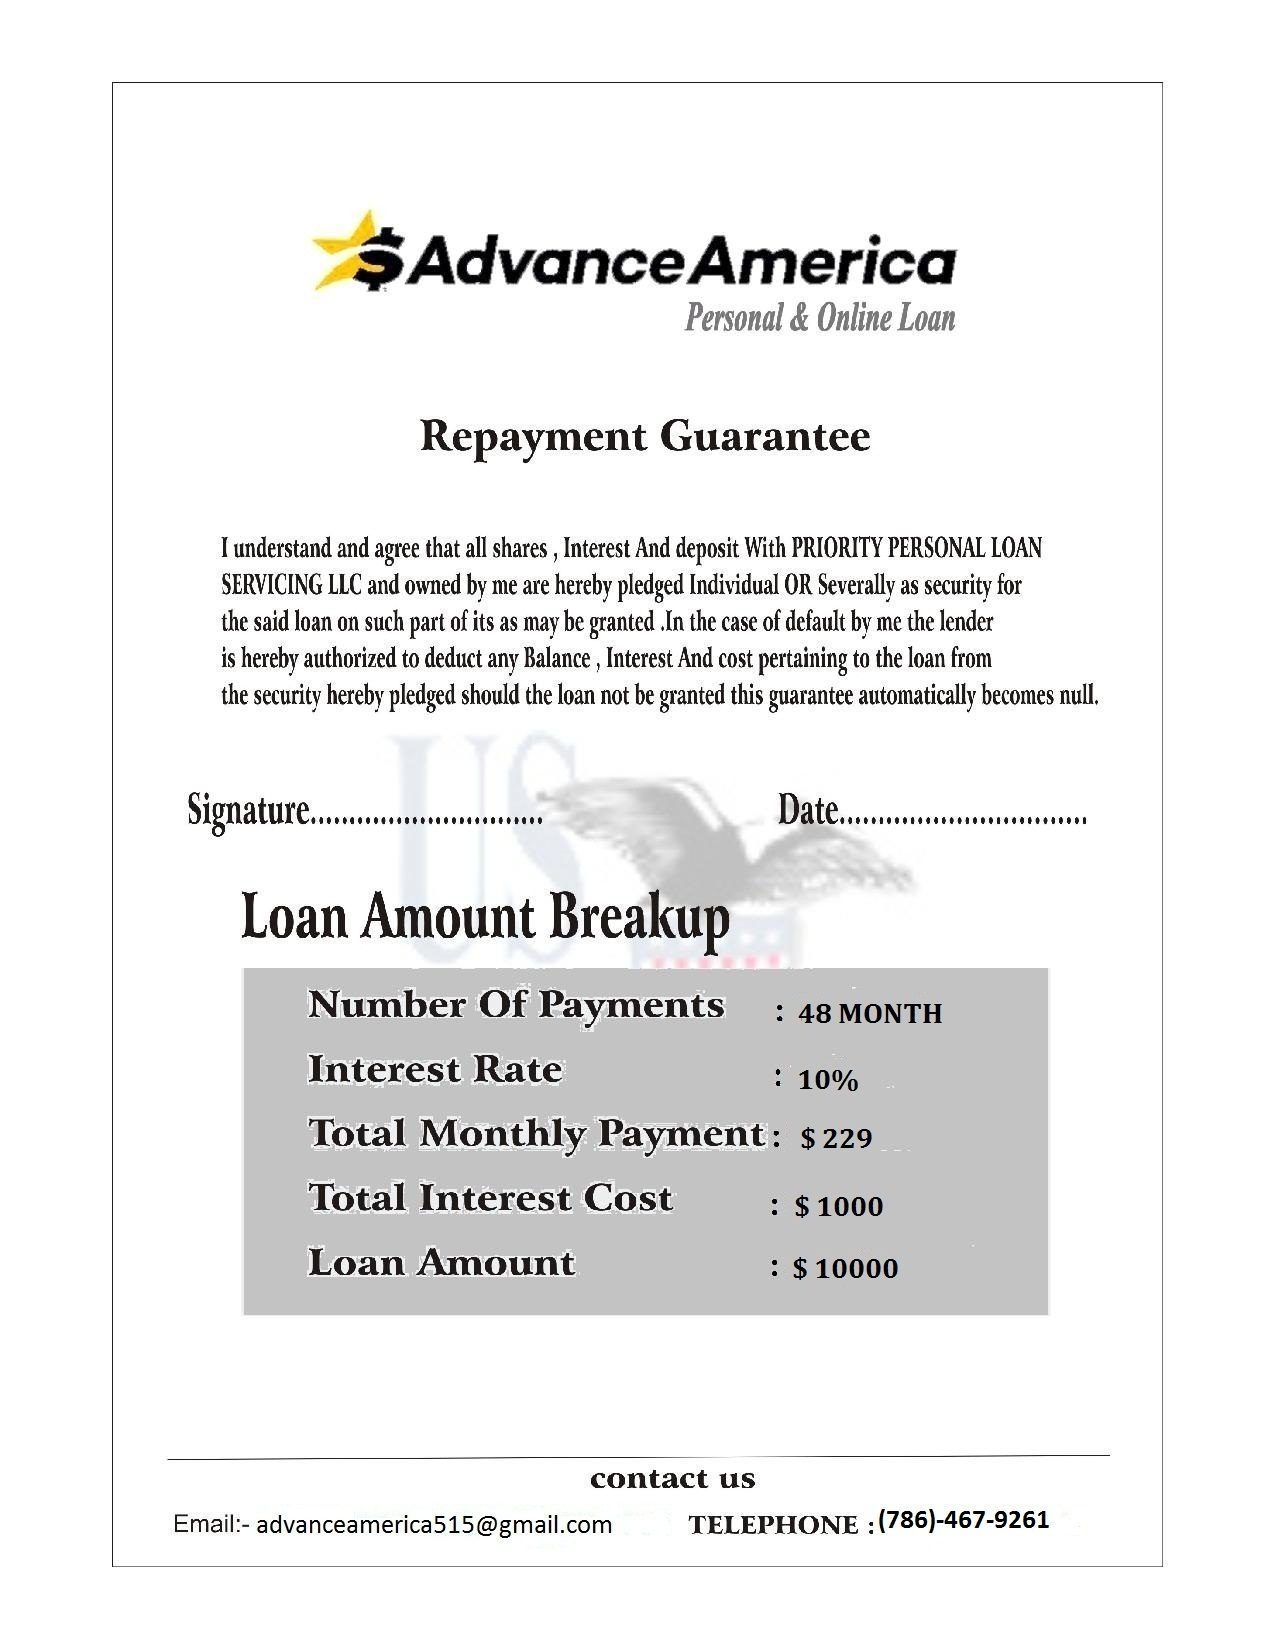 I How To Receive Several Loan Applications With Pdf Files Attached And Sent  To Me Saying I Was Approved For A Loan I Forwarded All Thisrmation